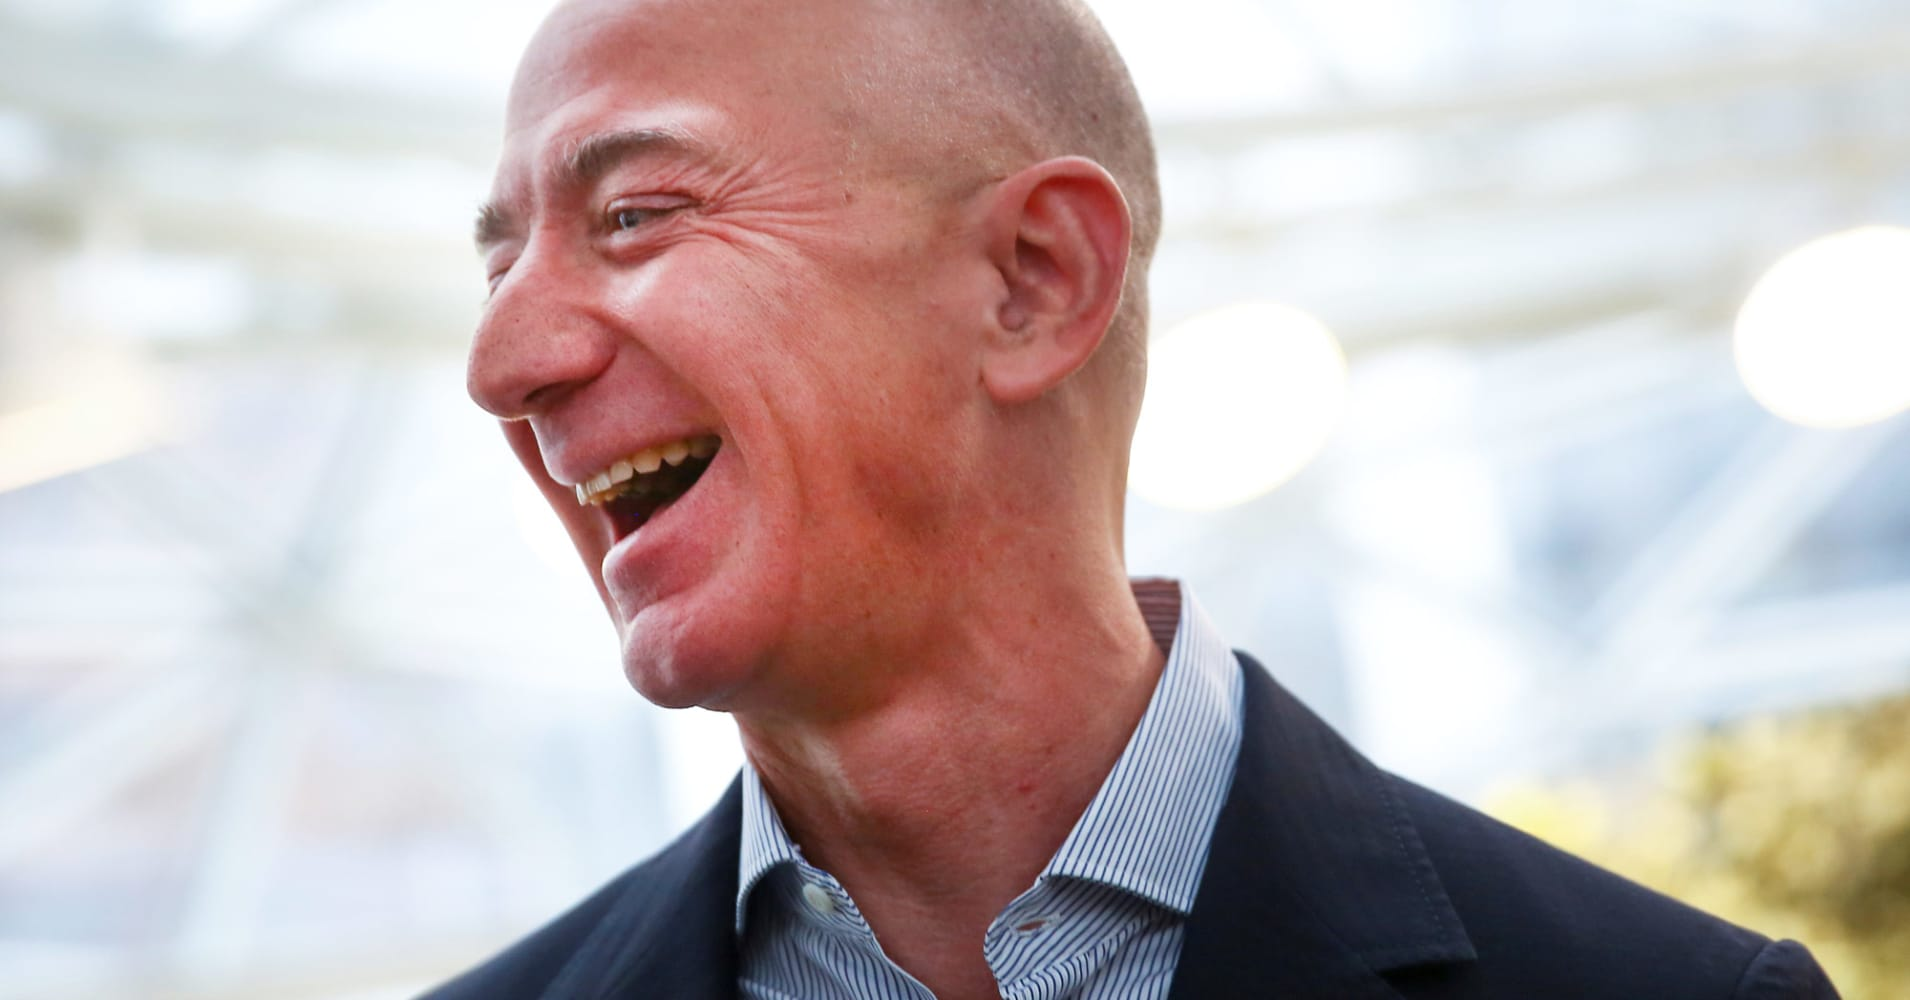 9 quotes from self-made billionaires that will change how you think about money and success